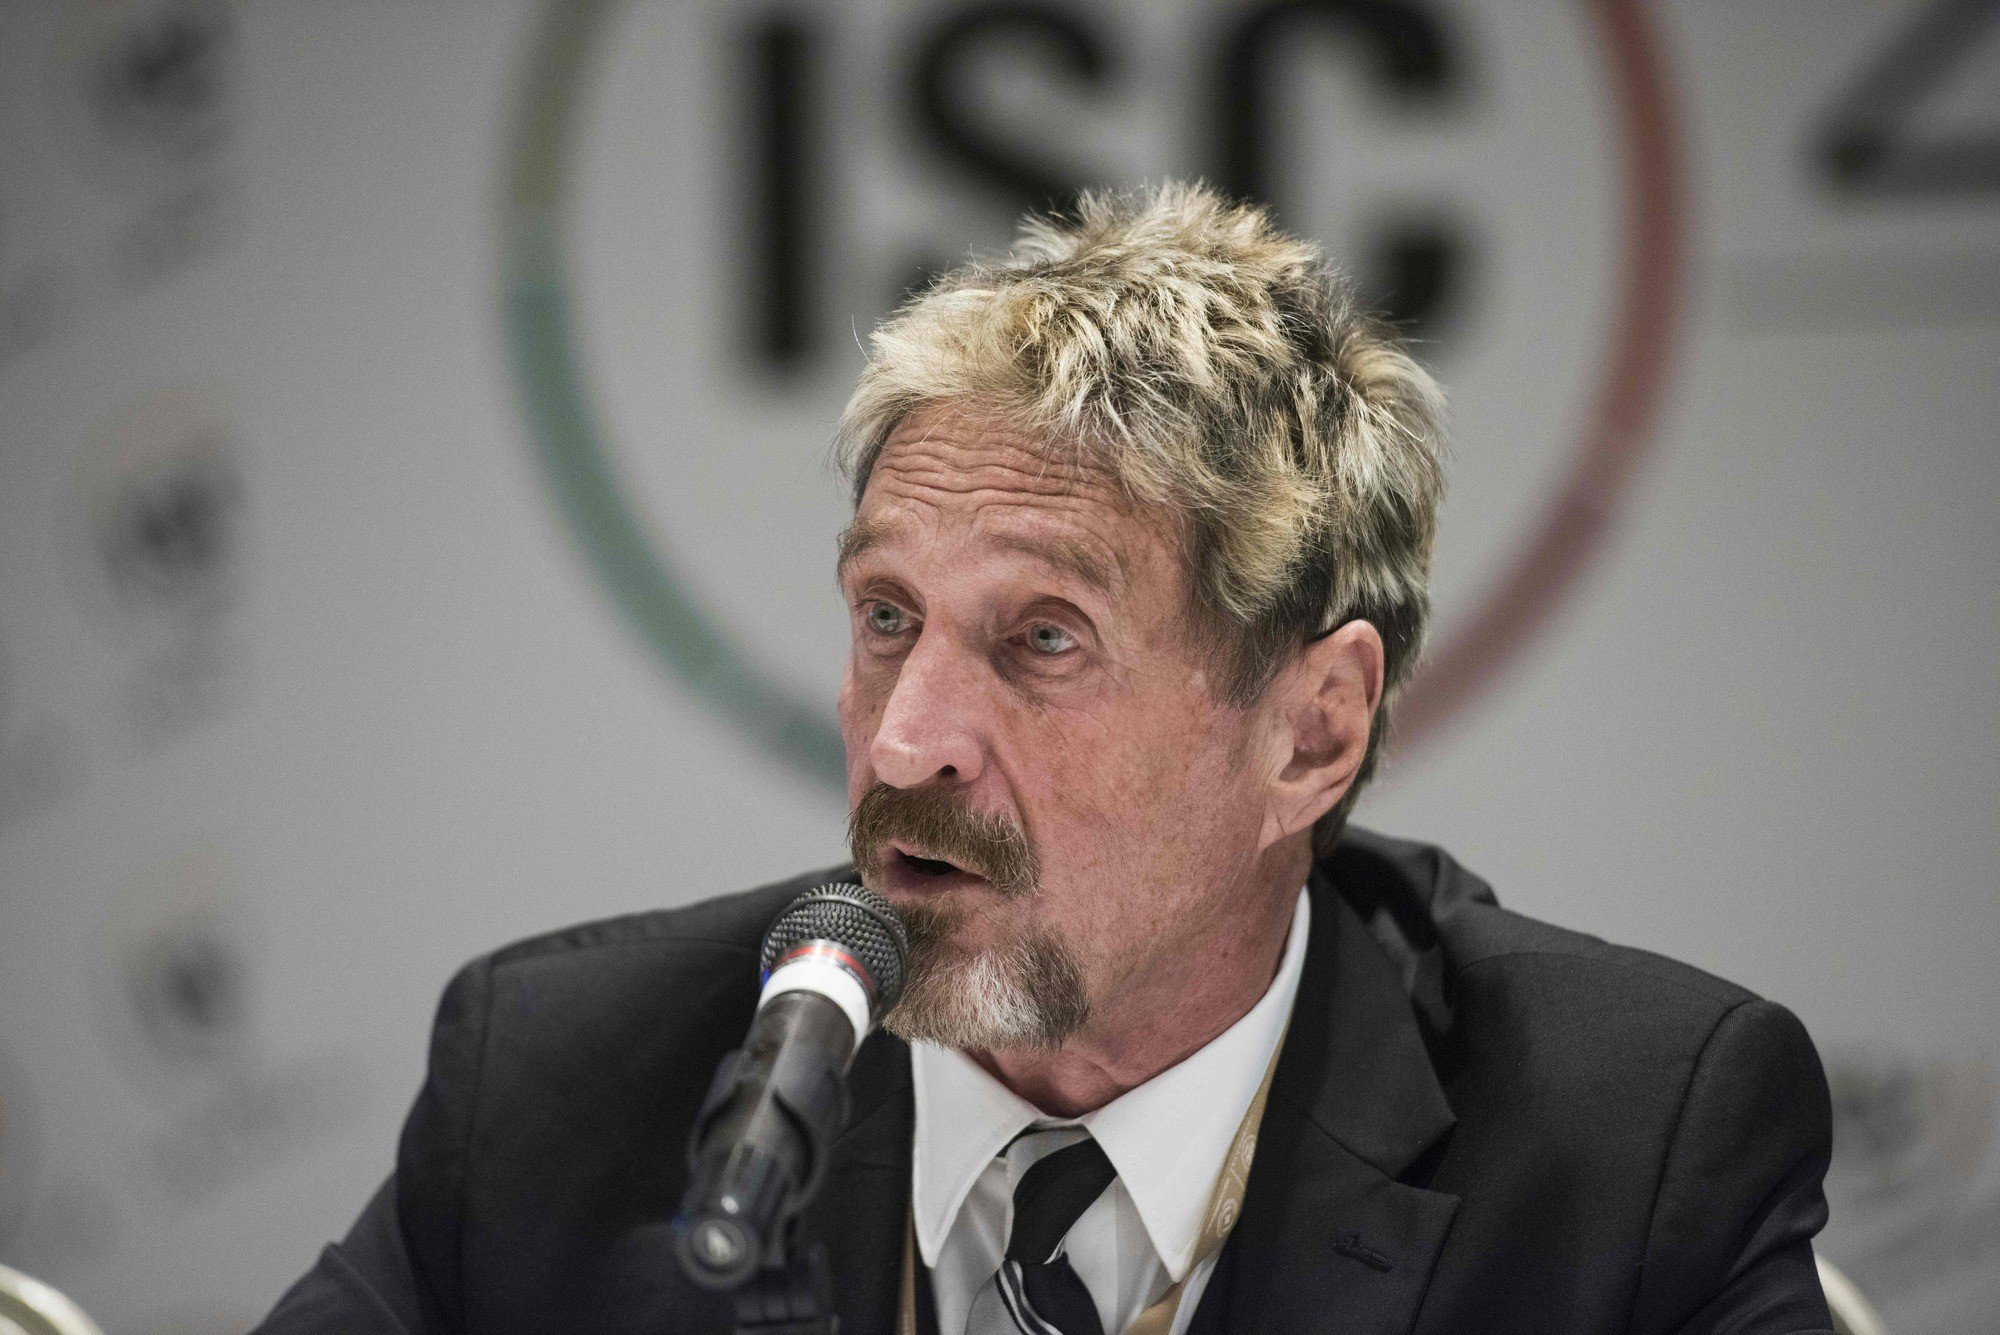 Bitcoin Price Will Reach $1 Million in 2020, Or You're an Idiot: John McAfee